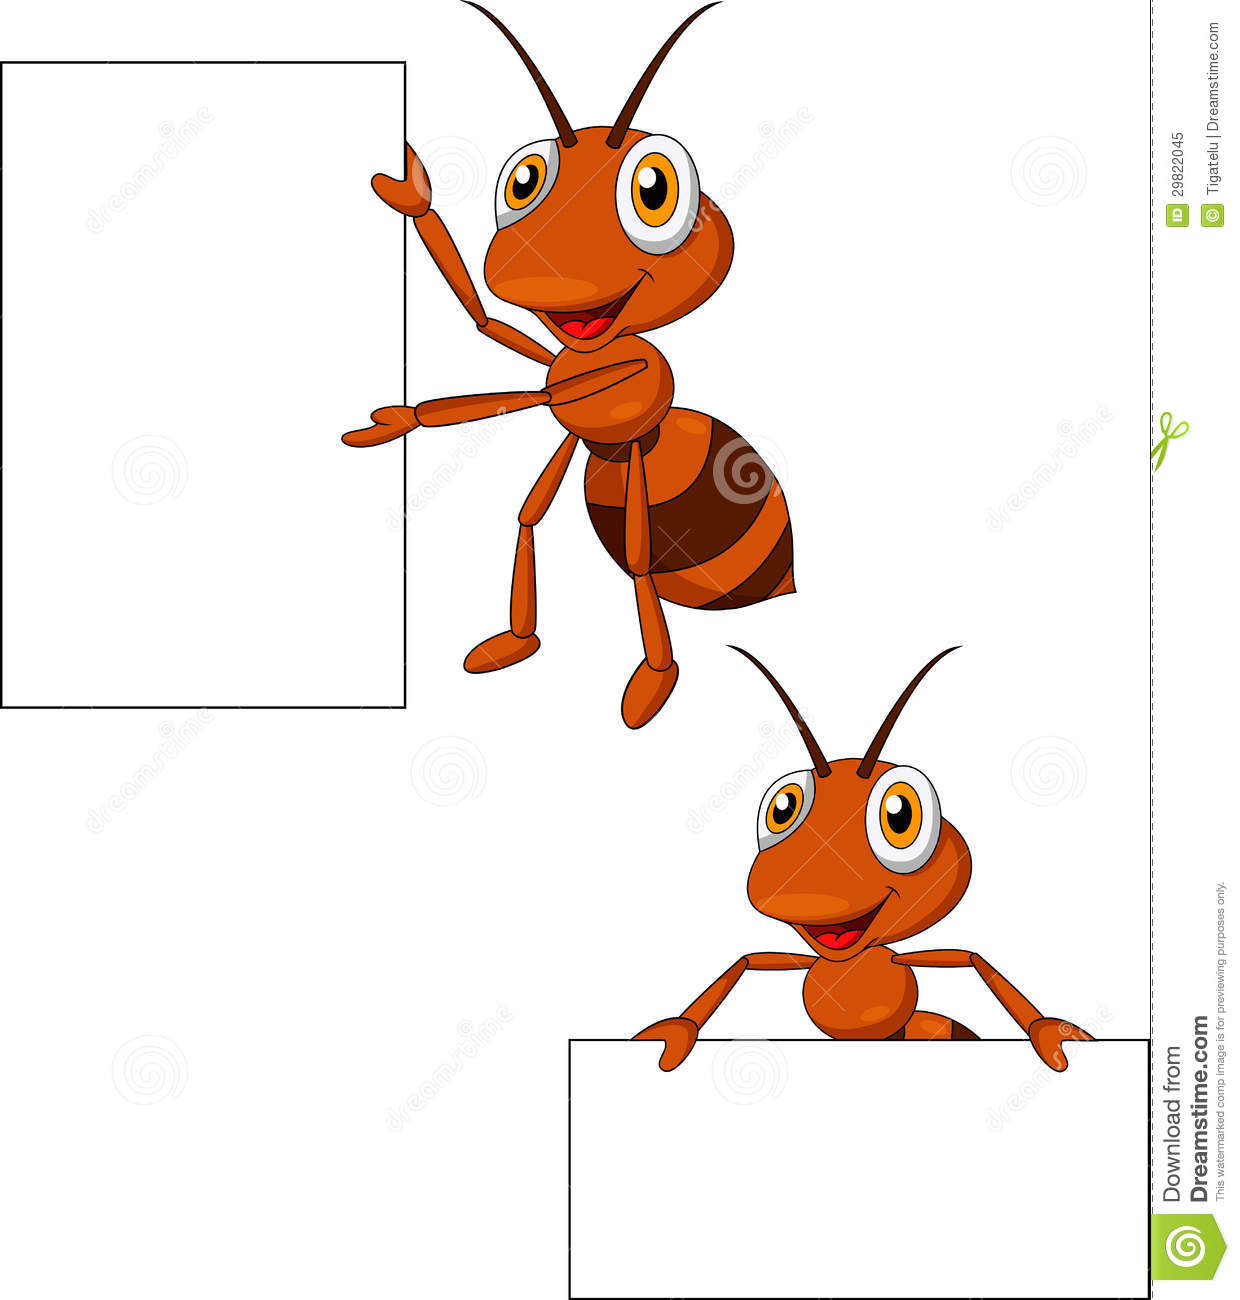 Free ant cartoon images fandifavi